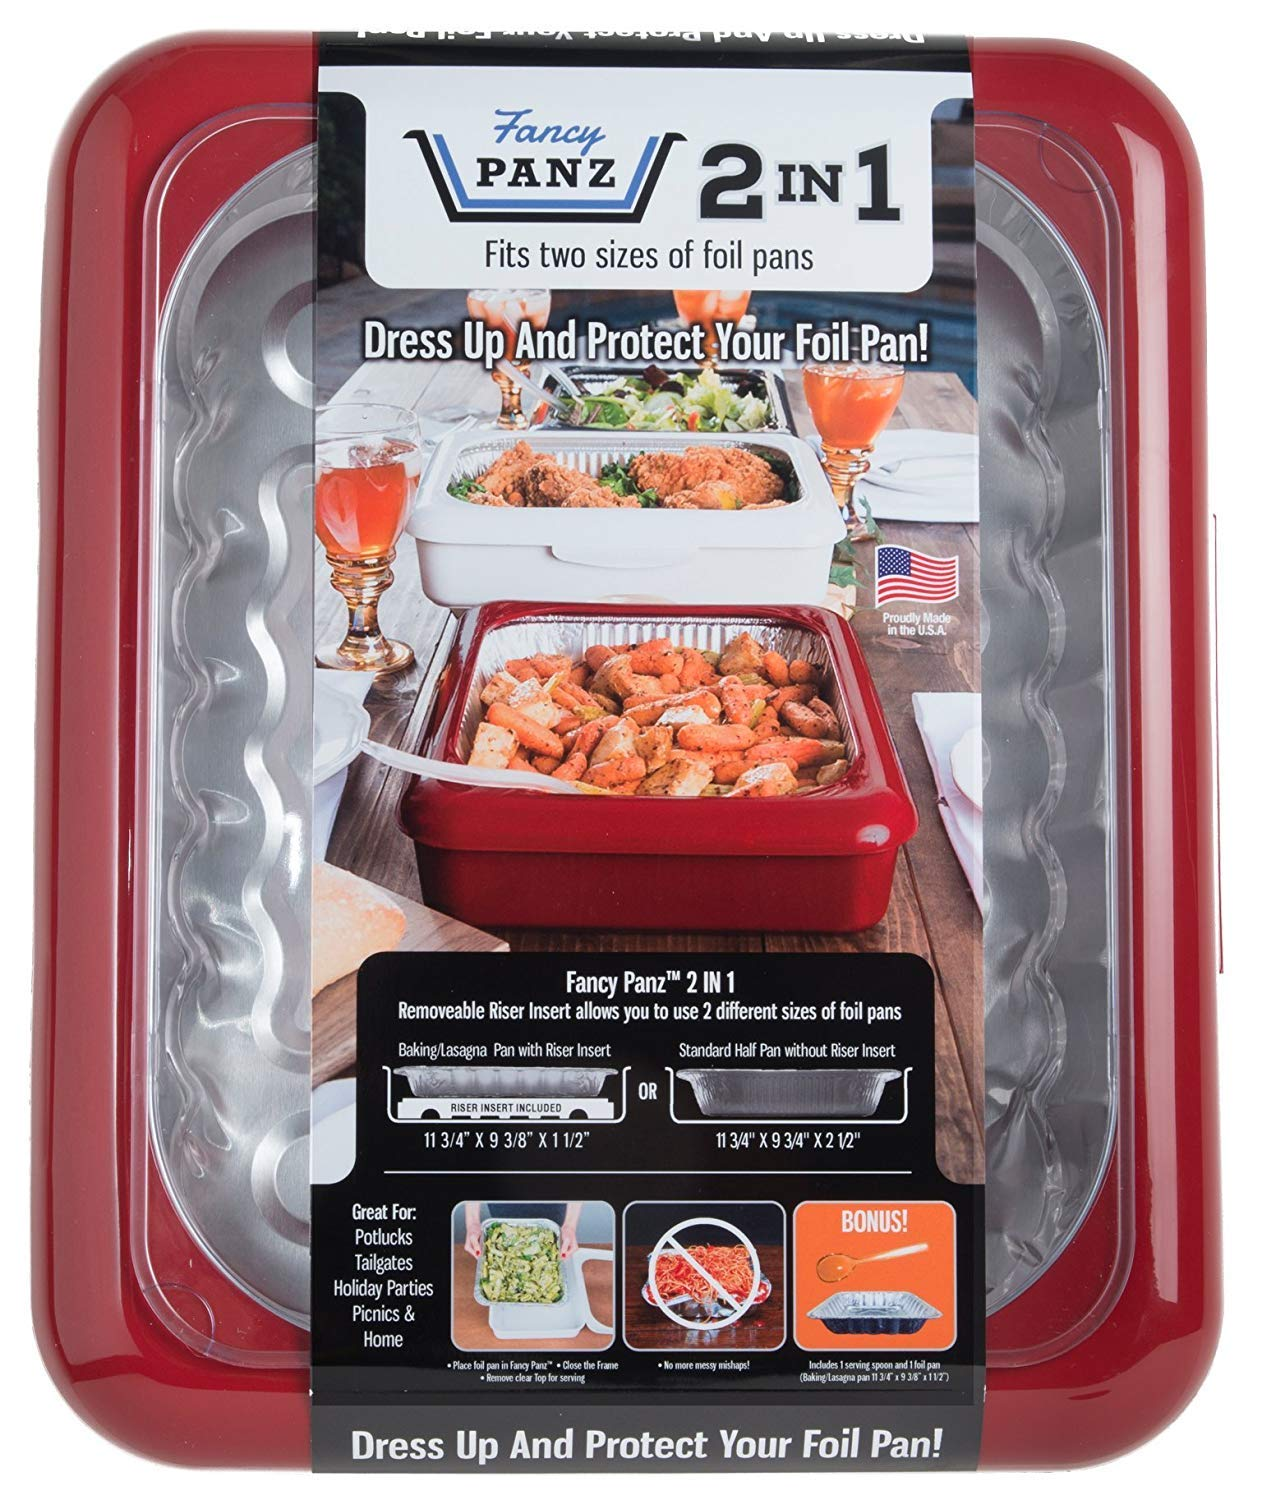 Fancy Panz FP21002 2 In 1 Portable Casserole Carrier for Indoor & Outdoor Use, Fits Shallow or Standard Half Size Foil Pans, Bonus Serving Spoon & Foil Pan Included, Red